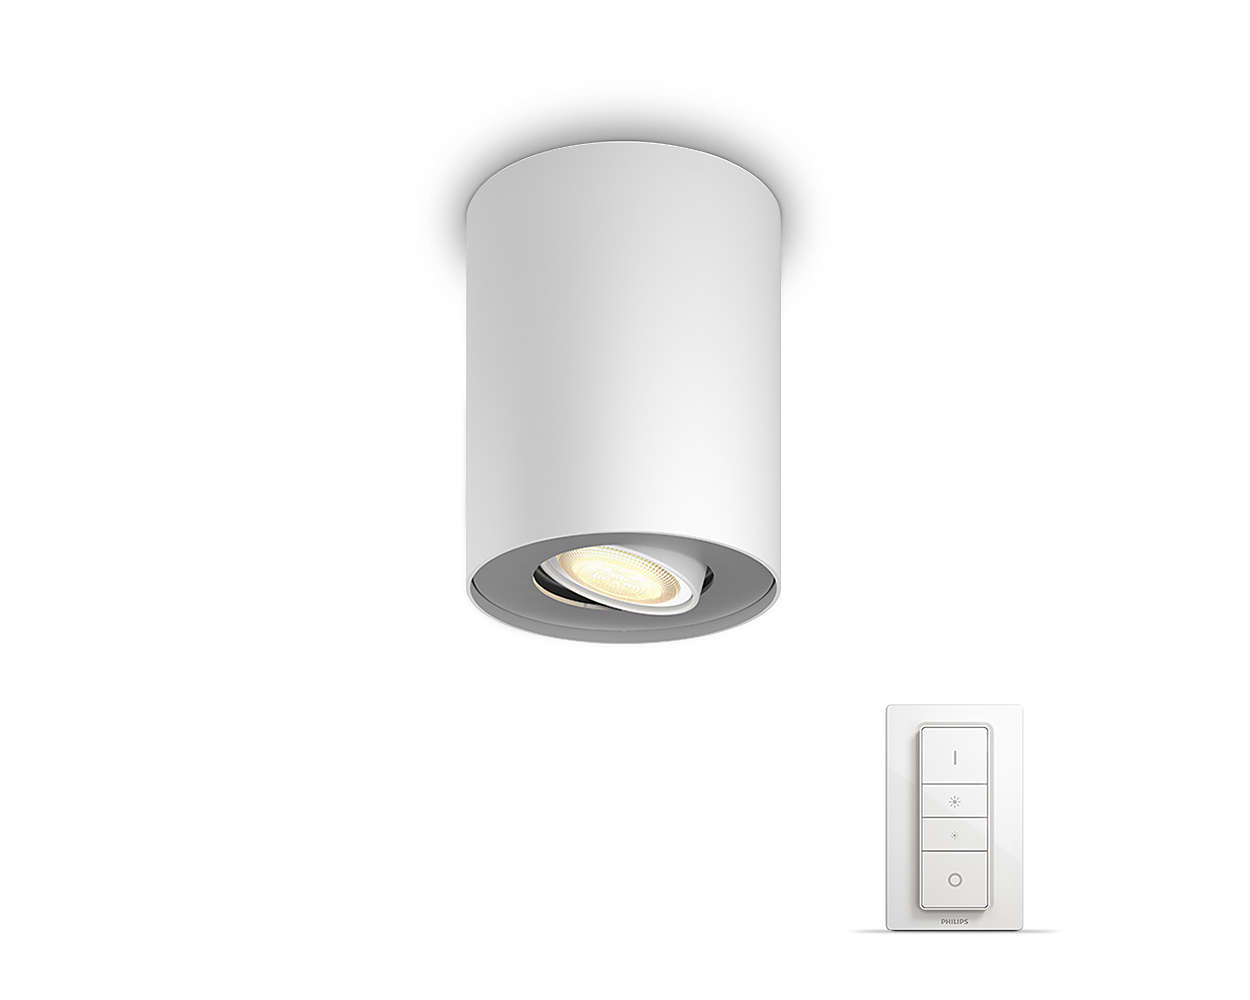 Philips Hue - Pillar Hue single spot white 1x5.5W 230V - White Ambiance With Dimmer Bluetooth